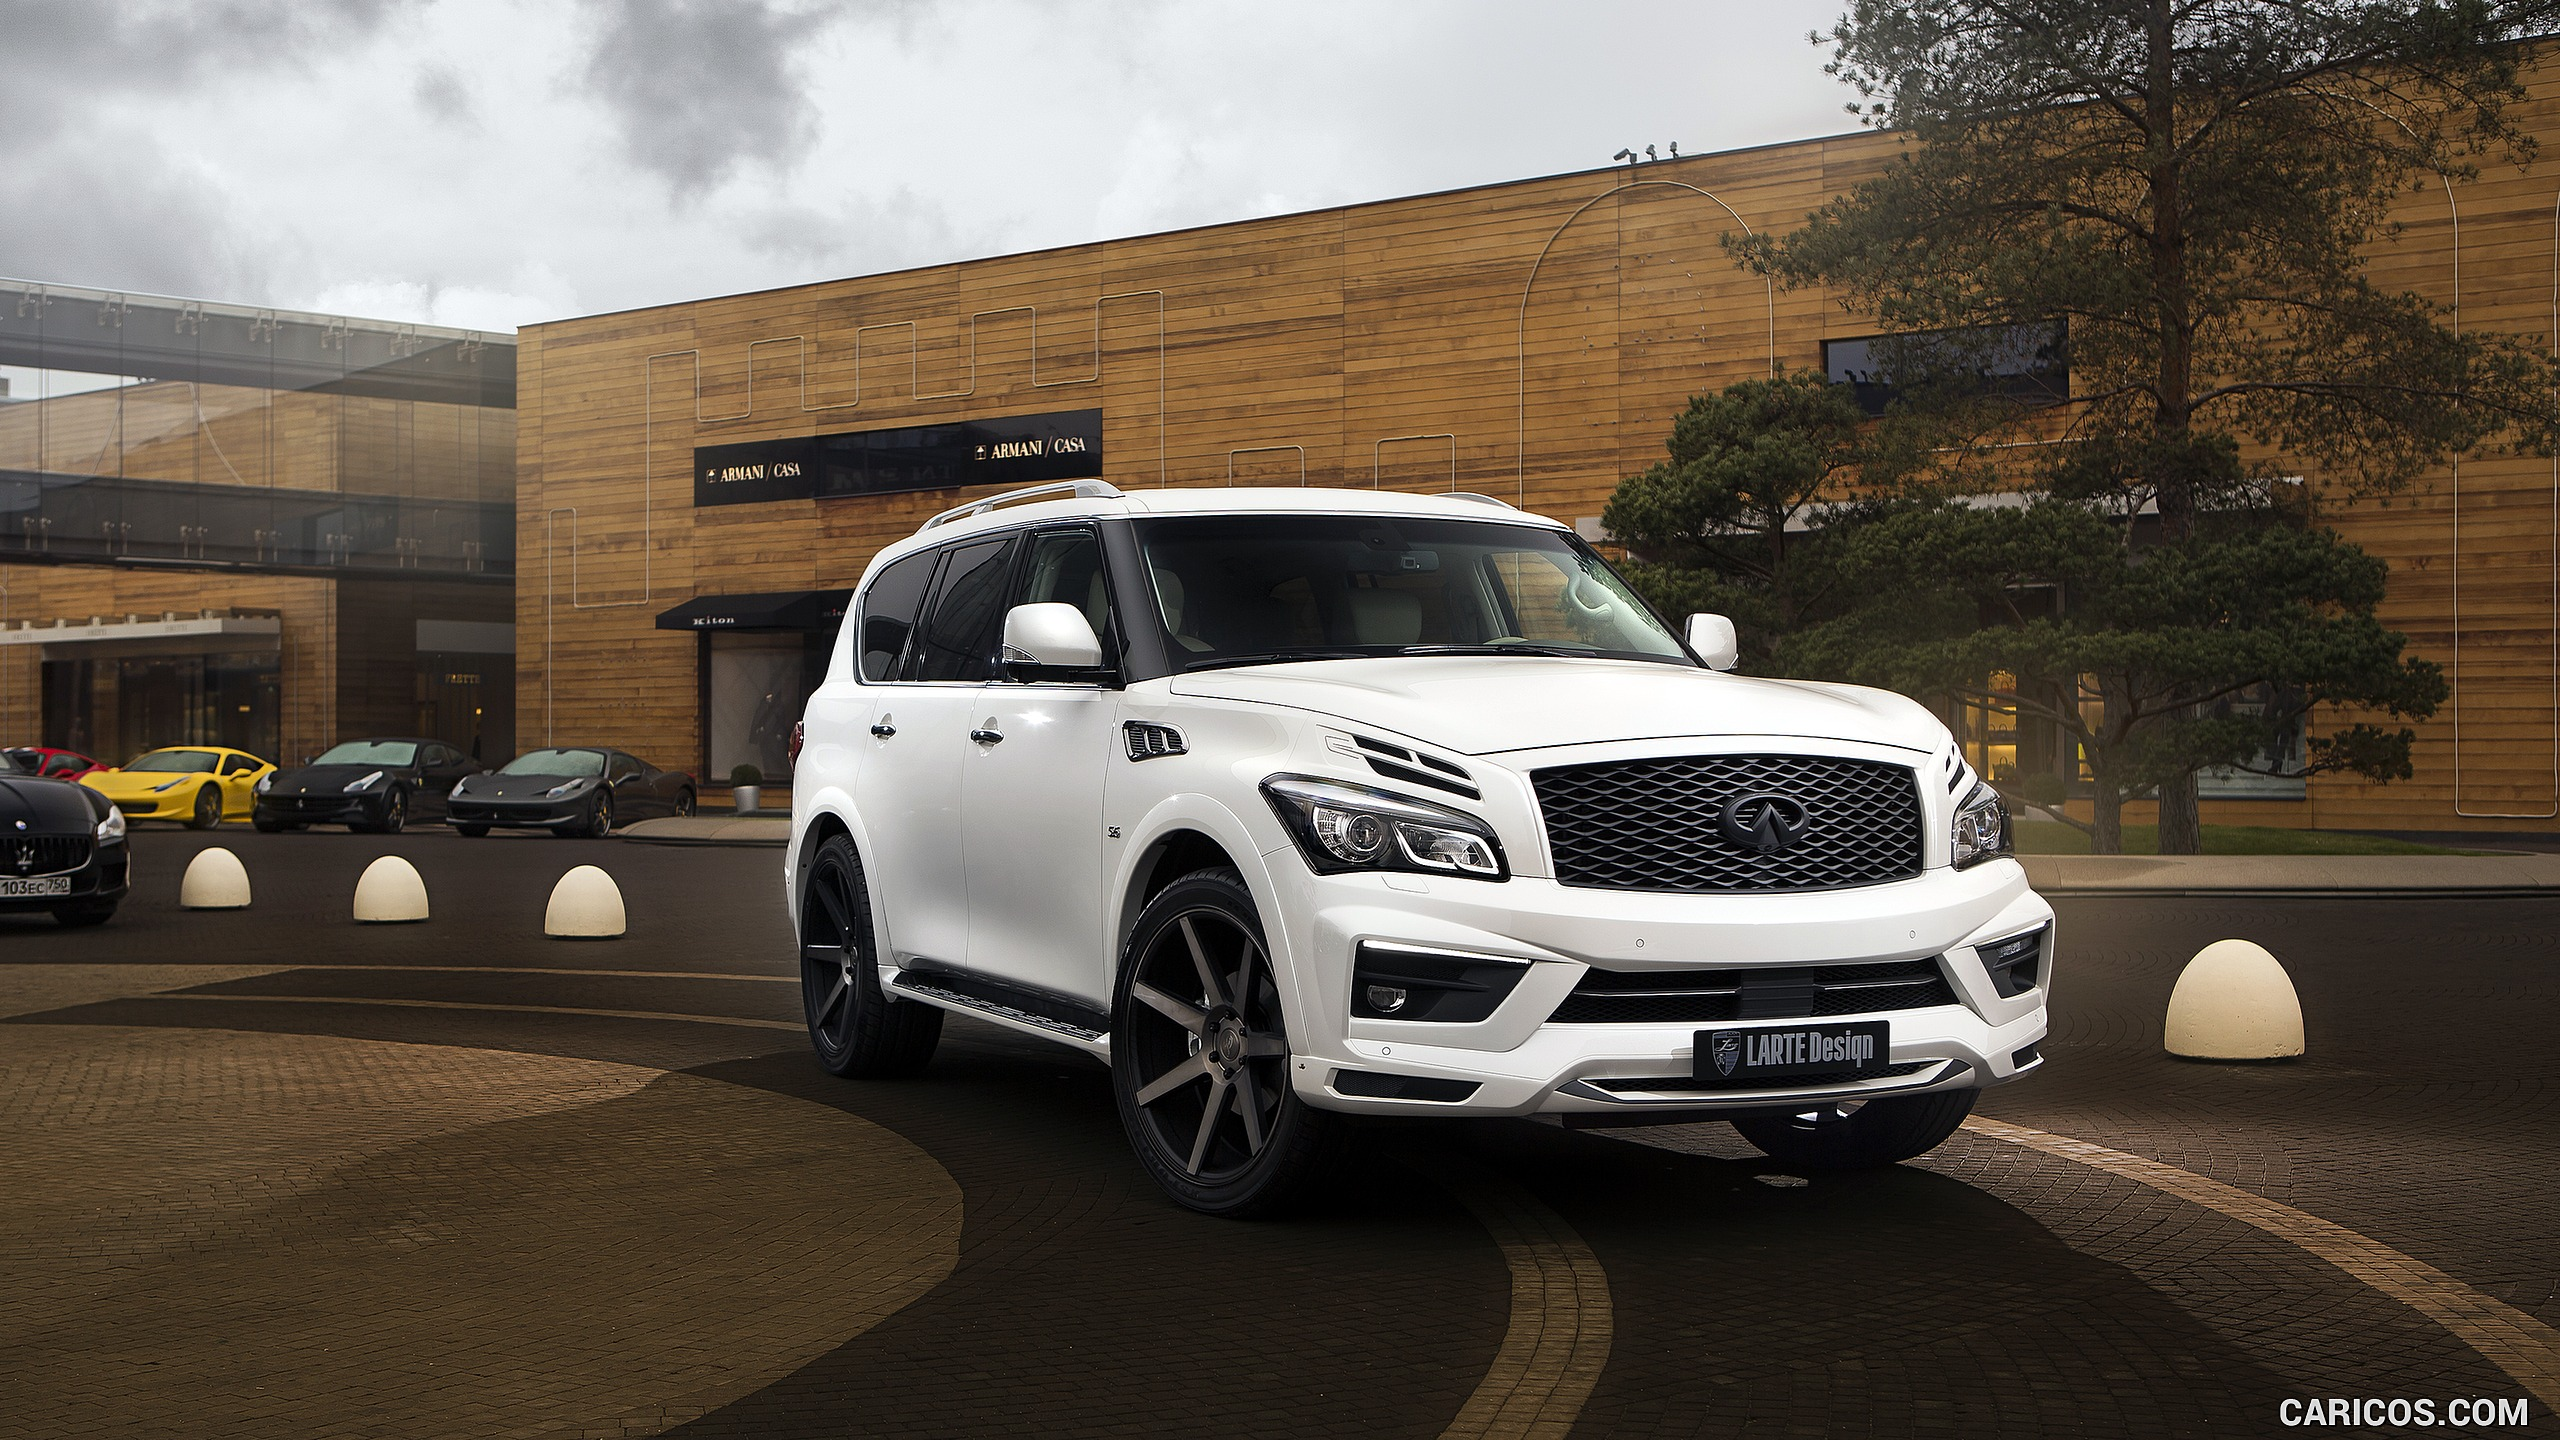 2560x1440 - Infiniti QX80 Wallpapers 21